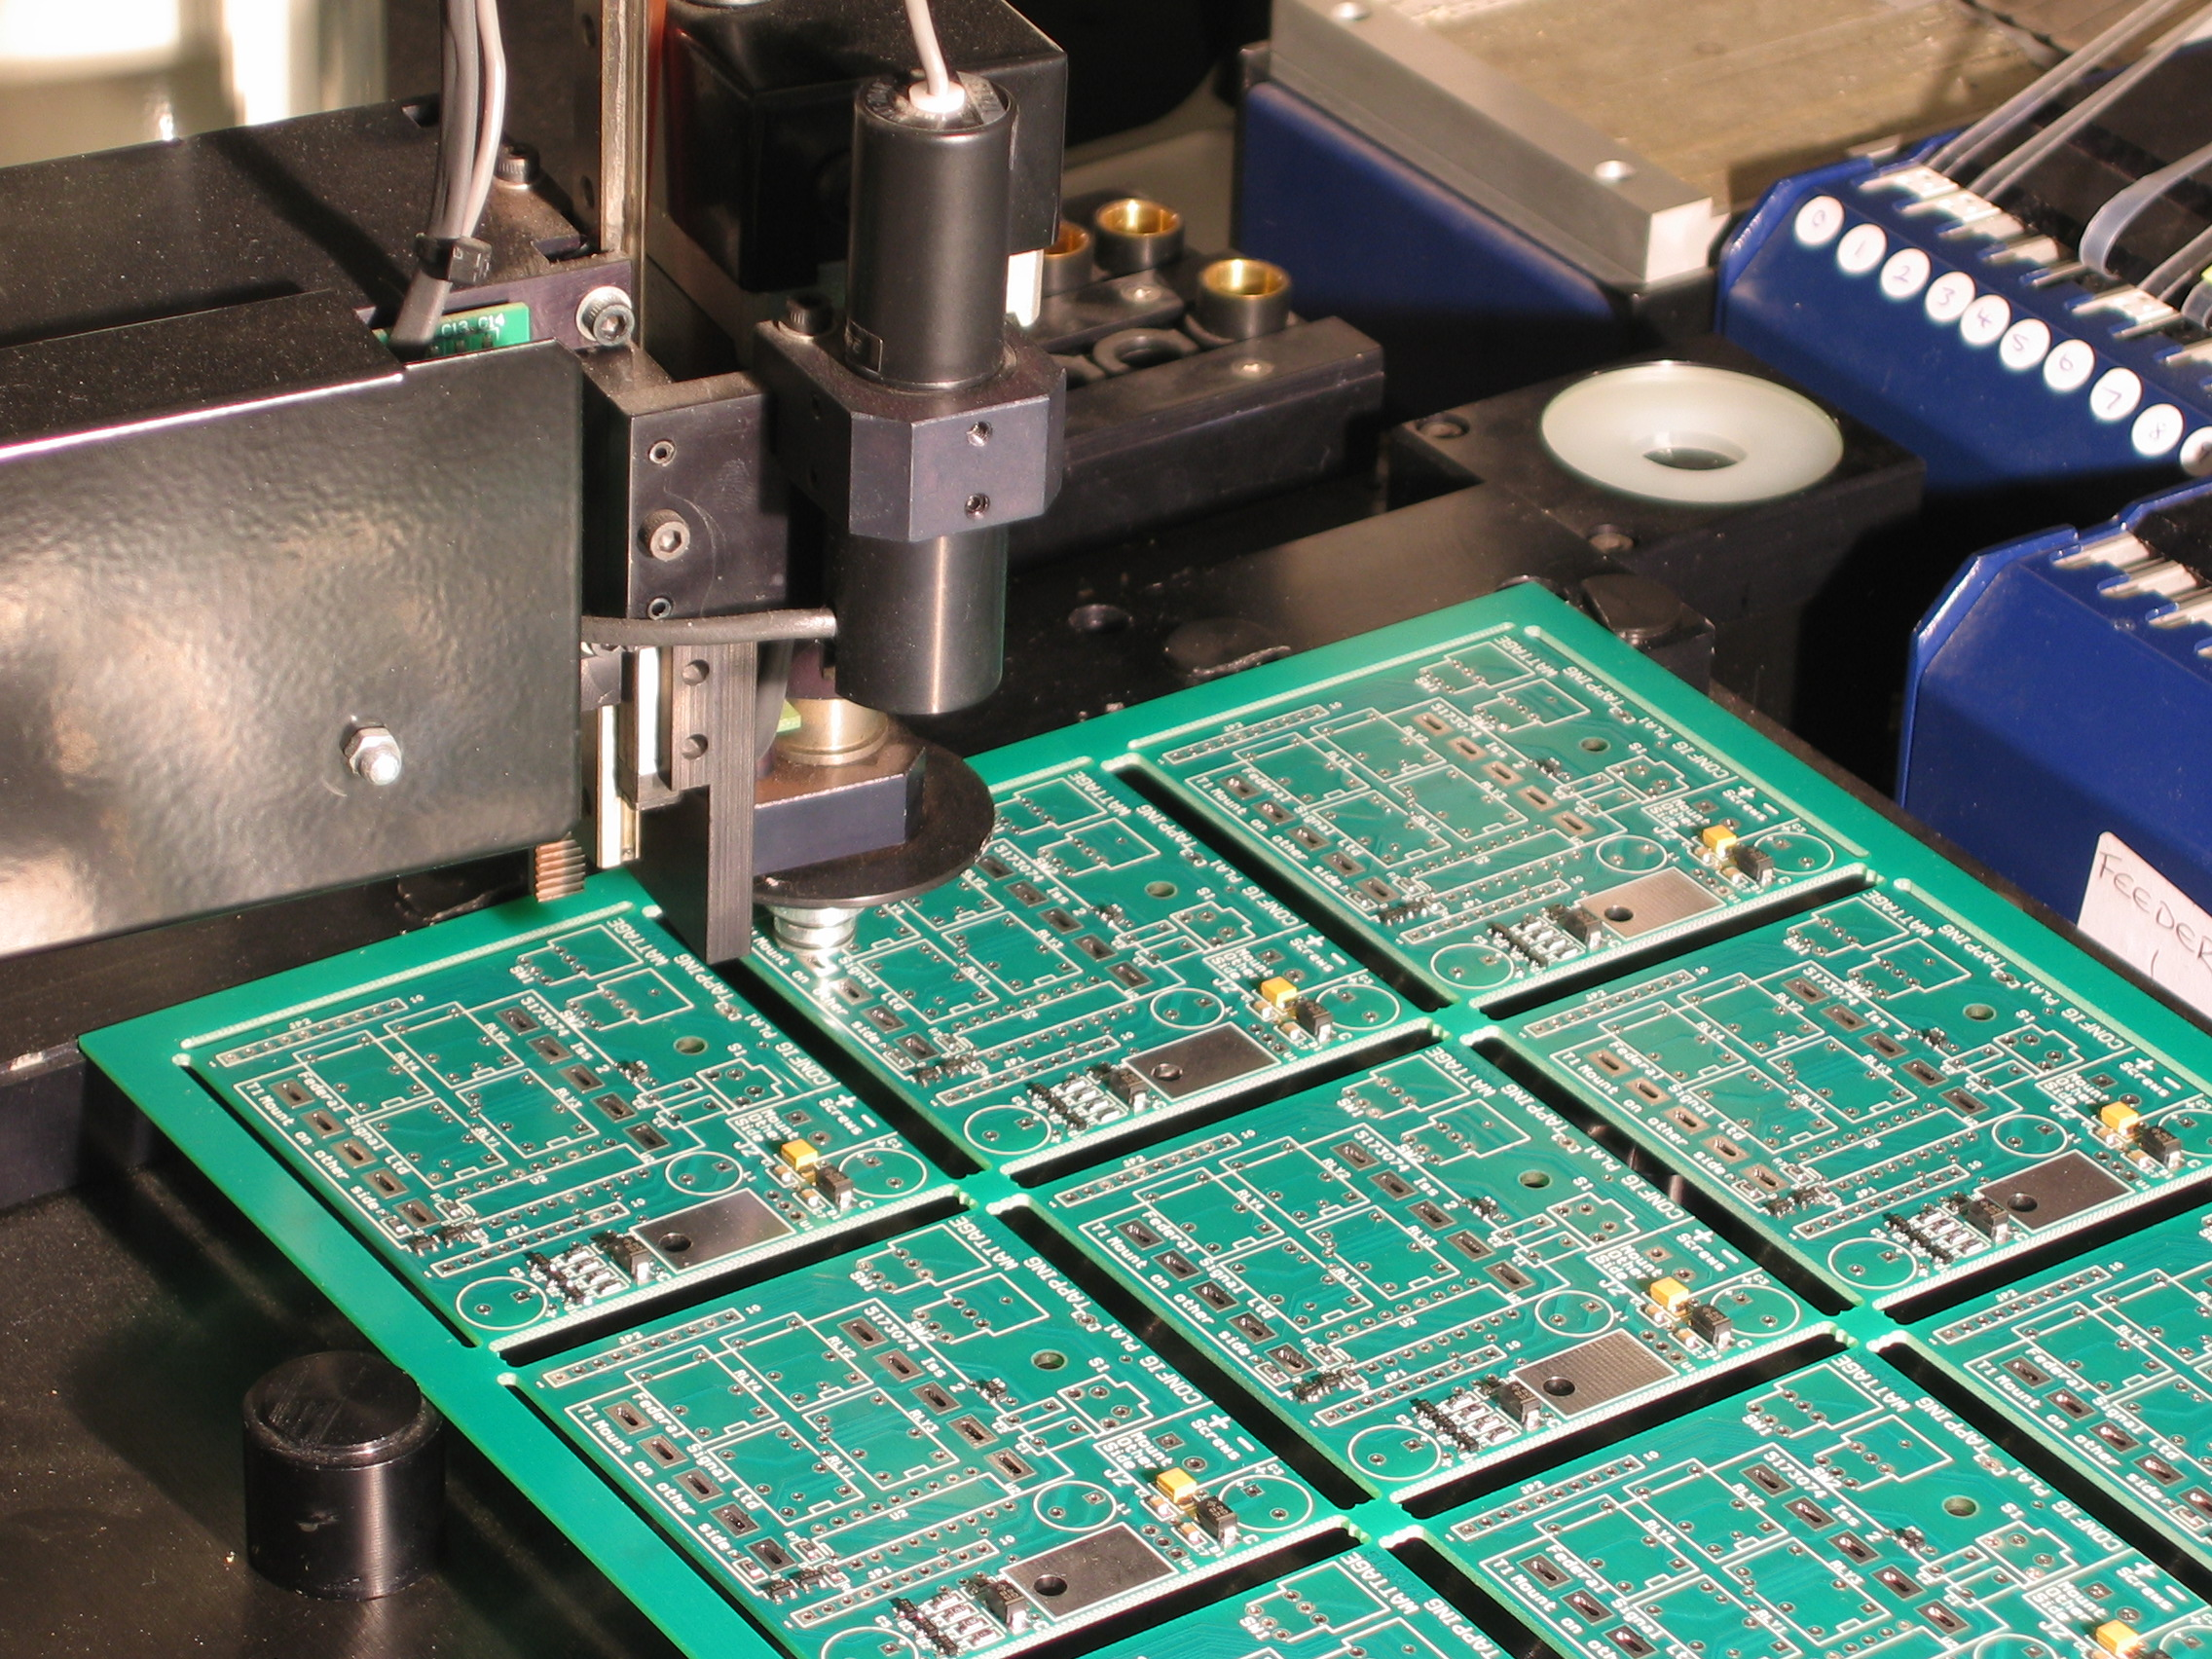 Technofriends Electronic Solutions Printed Circuit Boards Manufacturer High Technology Pcb Vlsi And Designing Since 2014 Having Done Lot Of Work In Above Fields We Operate On Various Segments Like Sales Business